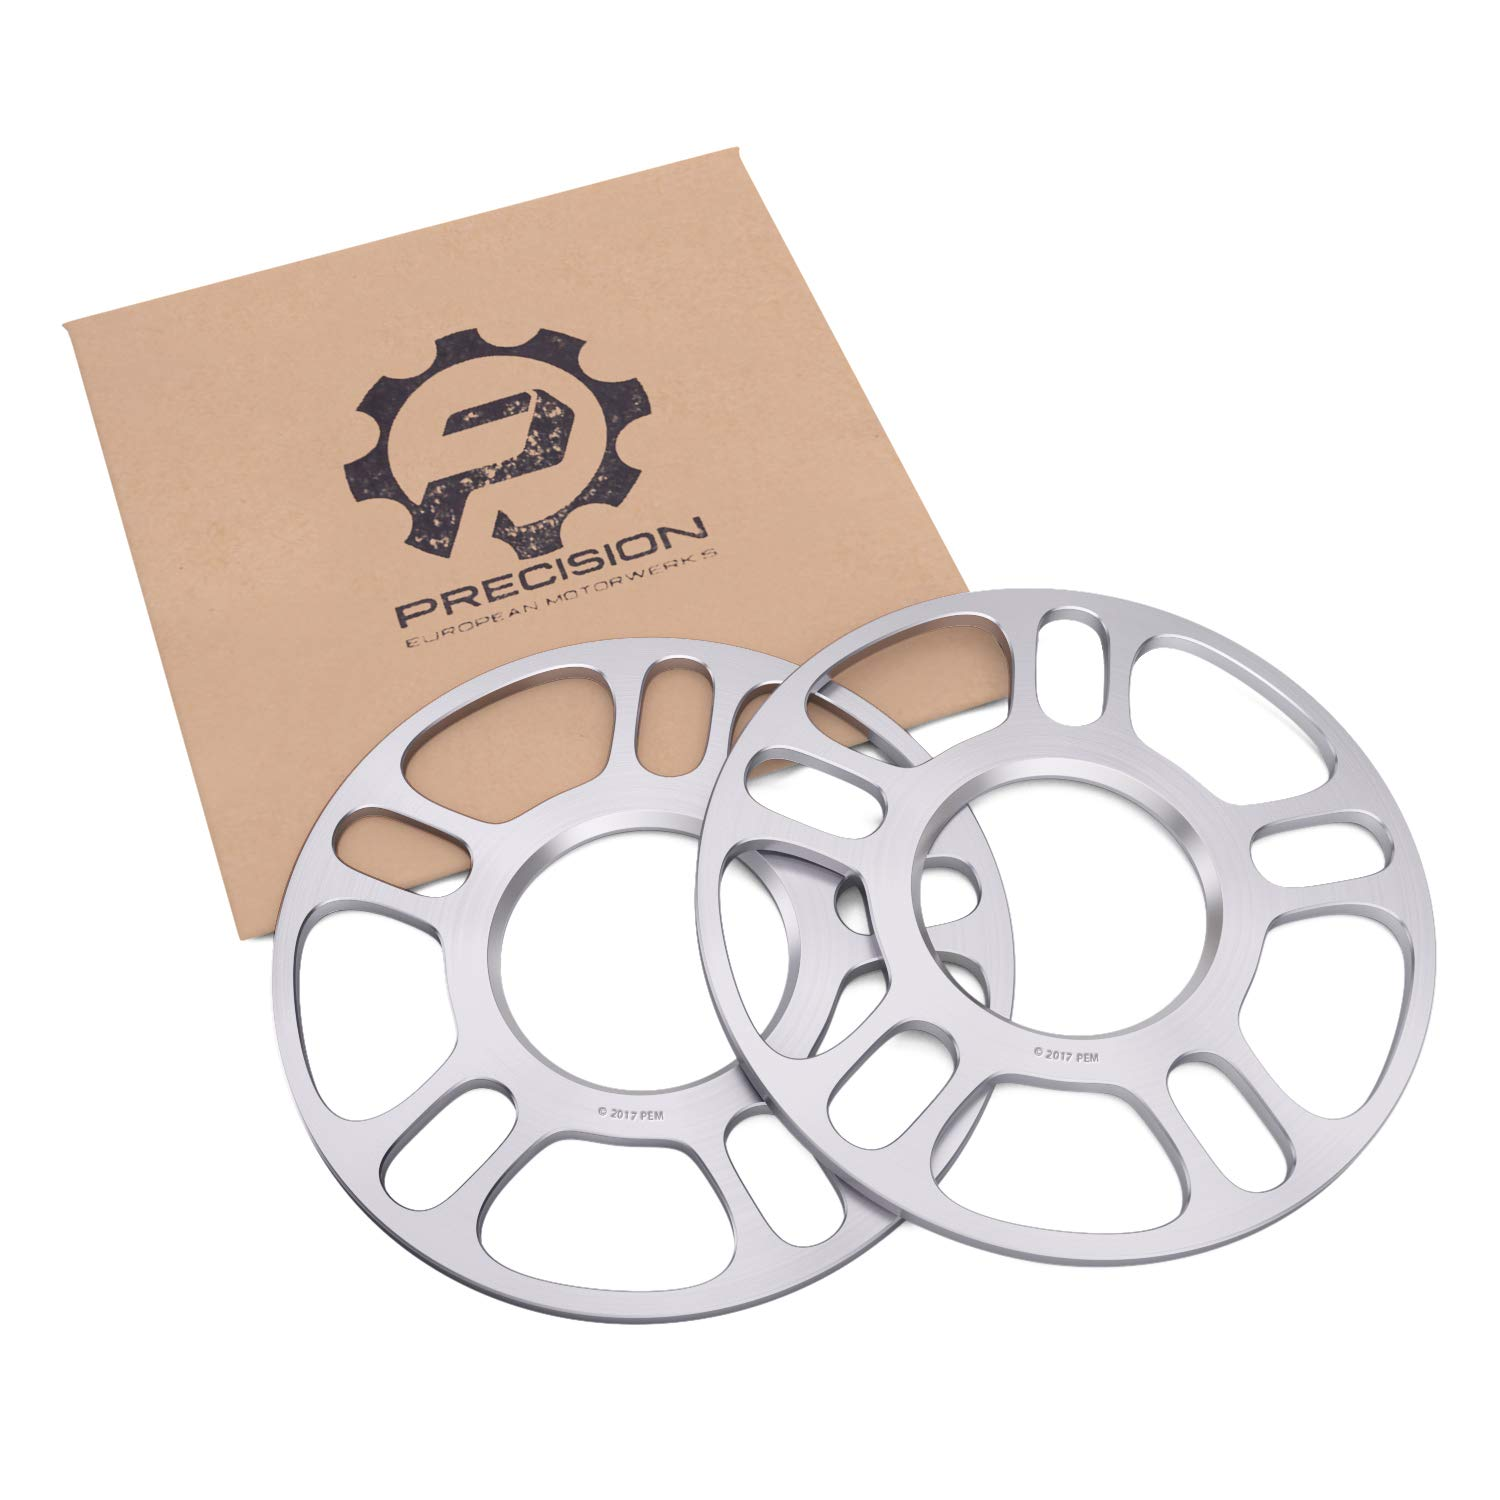 2pc 5mm 5x120 Hubcentric Wheel Spacers (72.6/72.56 Bore) Extremely Lightweight for many BMW Vehicles:318i 320i 325i 328i 335i M3 428i 435i M4 525i 528i 530i 535i M5 Z3 Z4 640i 645ci E36 E46 E90 E92